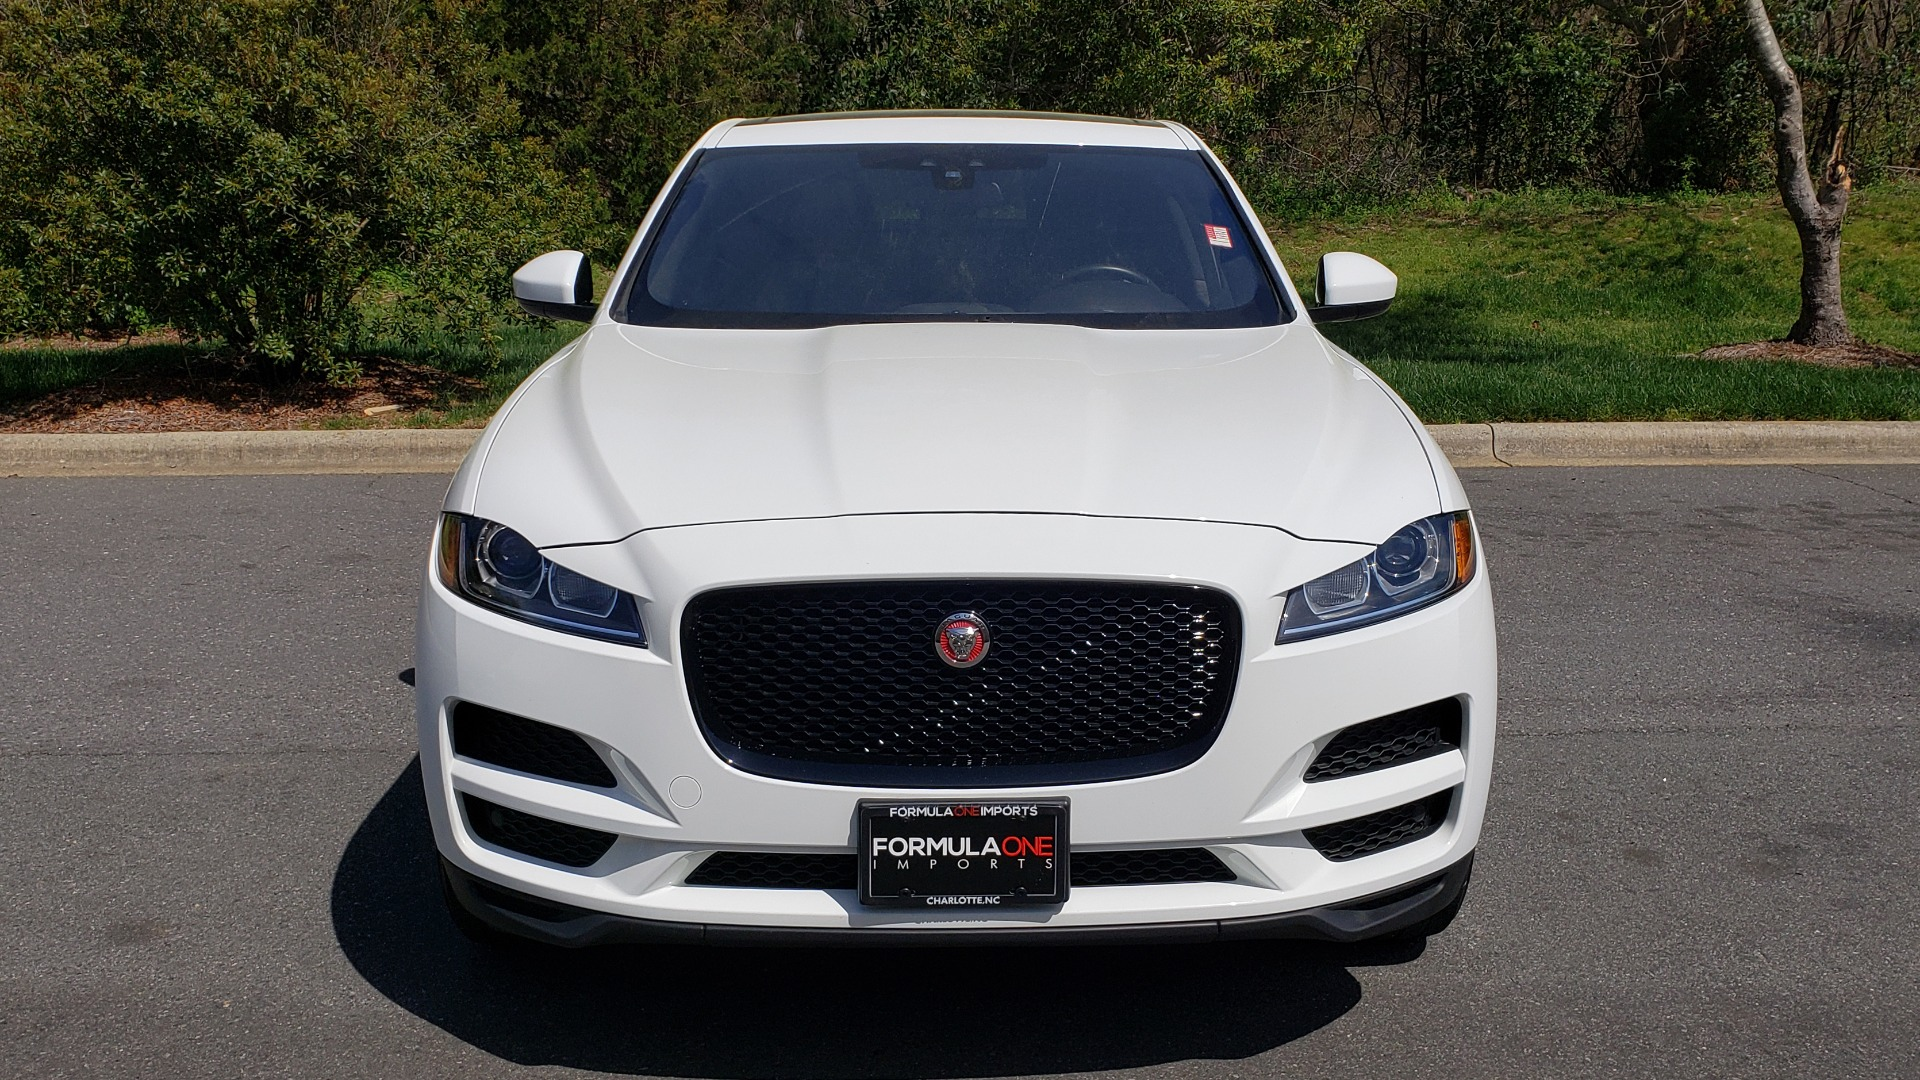 Used 2017 Jaguar F-PACE 35T PREMIUM / NAV / PANO-ROOF/ REARVIEW / BLK PKG for sale Sold at Formula Imports in Charlotte NC 28227 20